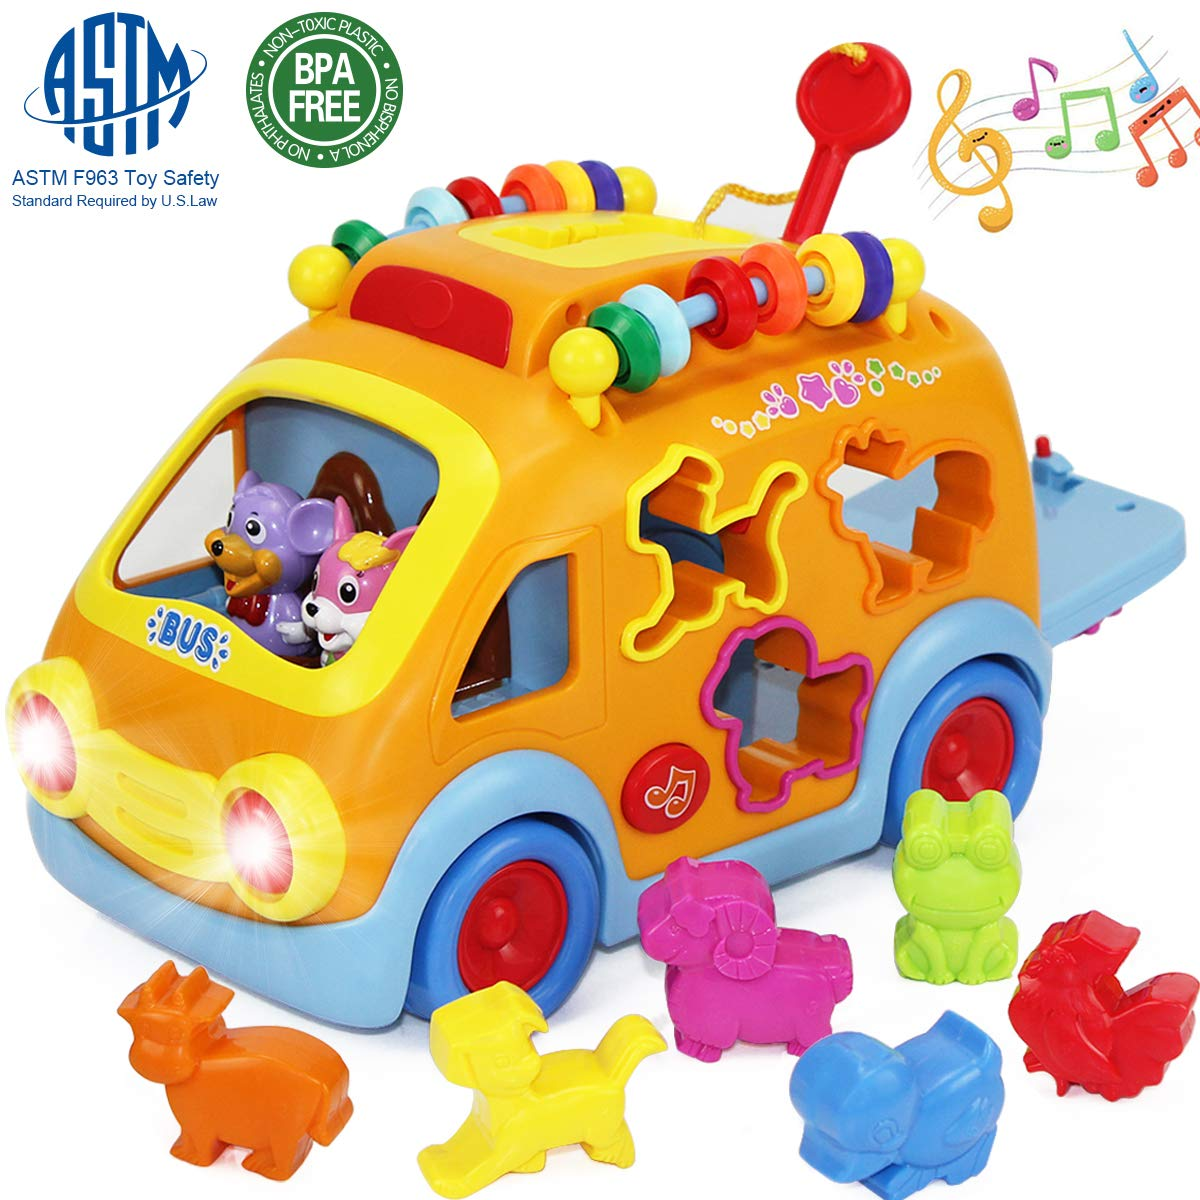 iPlay, iLearn Electronic Musical Bus, Baby Sensory Toy, 3D Animal Matching Car w/ Gear, Early Development, Learning, Educational Gift for Girls Boys Toddlers Kids by iPlay, iLearn